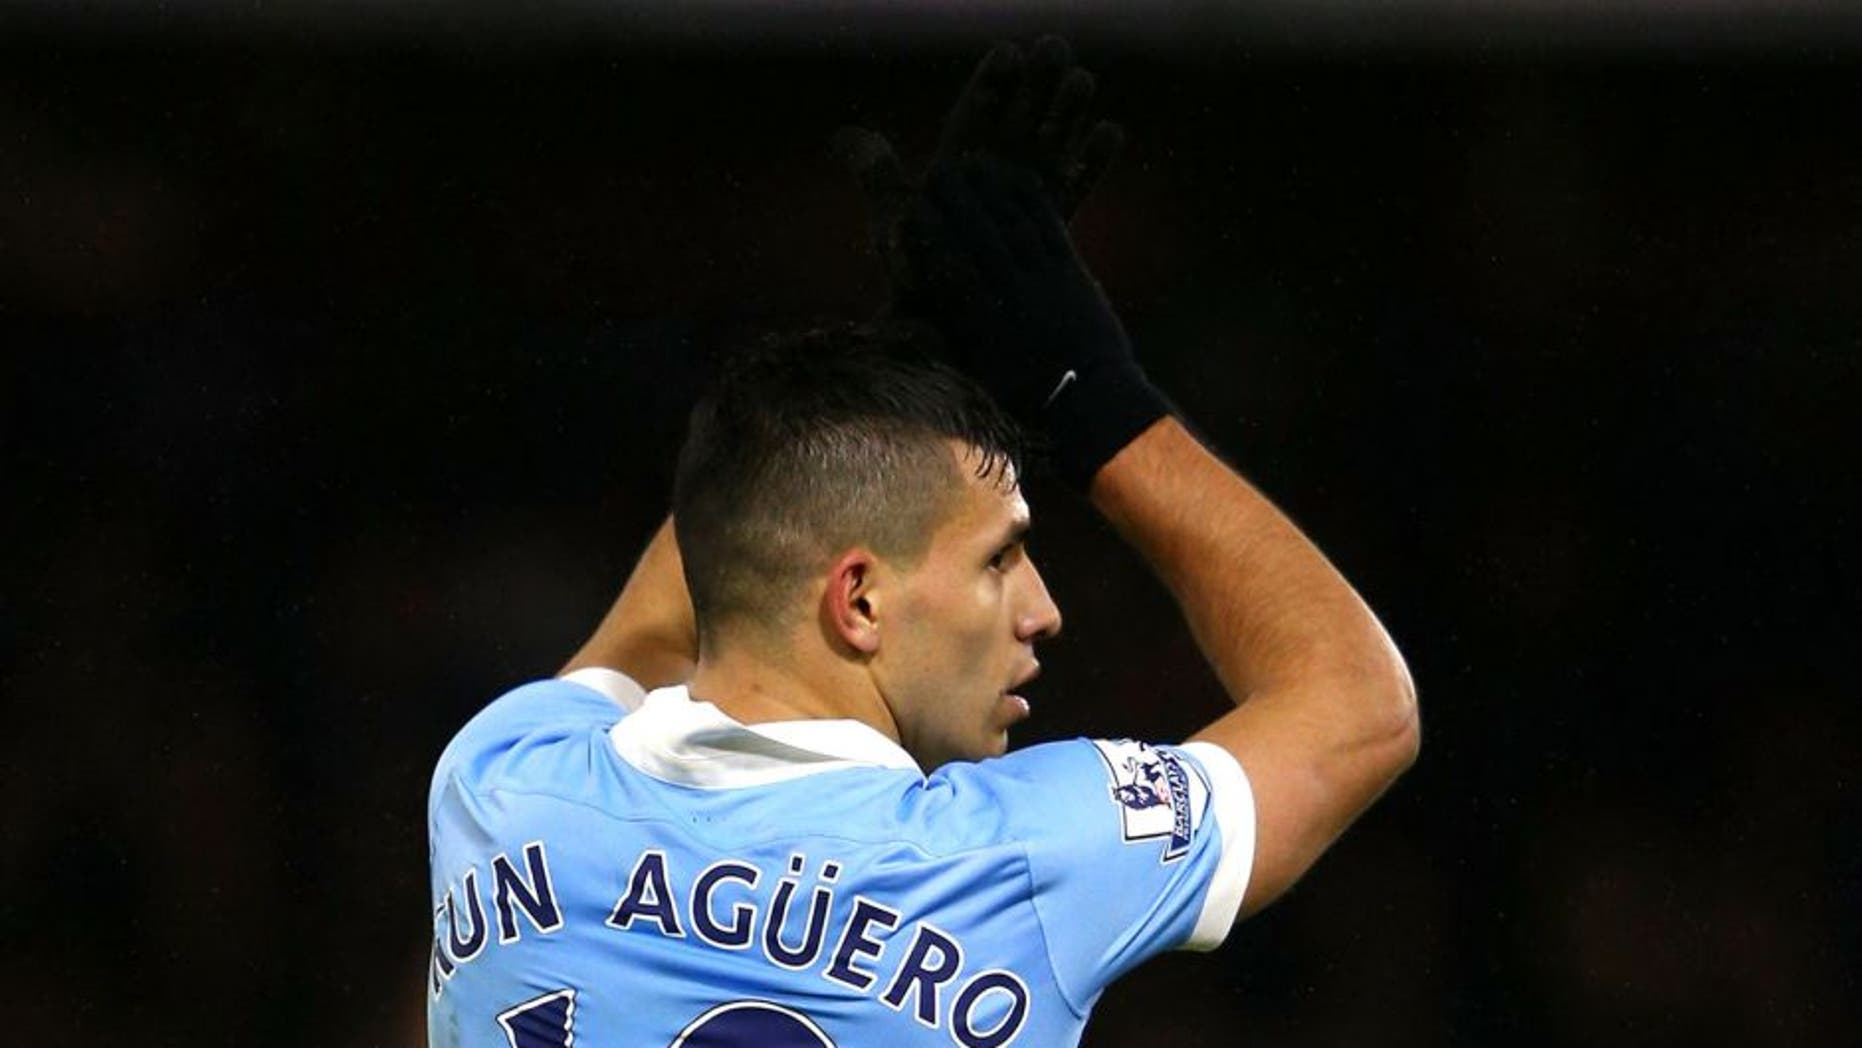 WATFORD, ENGLAND - JANUARY 02: Sergio Aguero of Manchester City celebrates scoring his side's second goal during the Barclays Premier League match between Watford and Manchester City at Vicarage Road on January 2, 2016 in Watford, England. (Photo by Ian Walton/Getty Images)